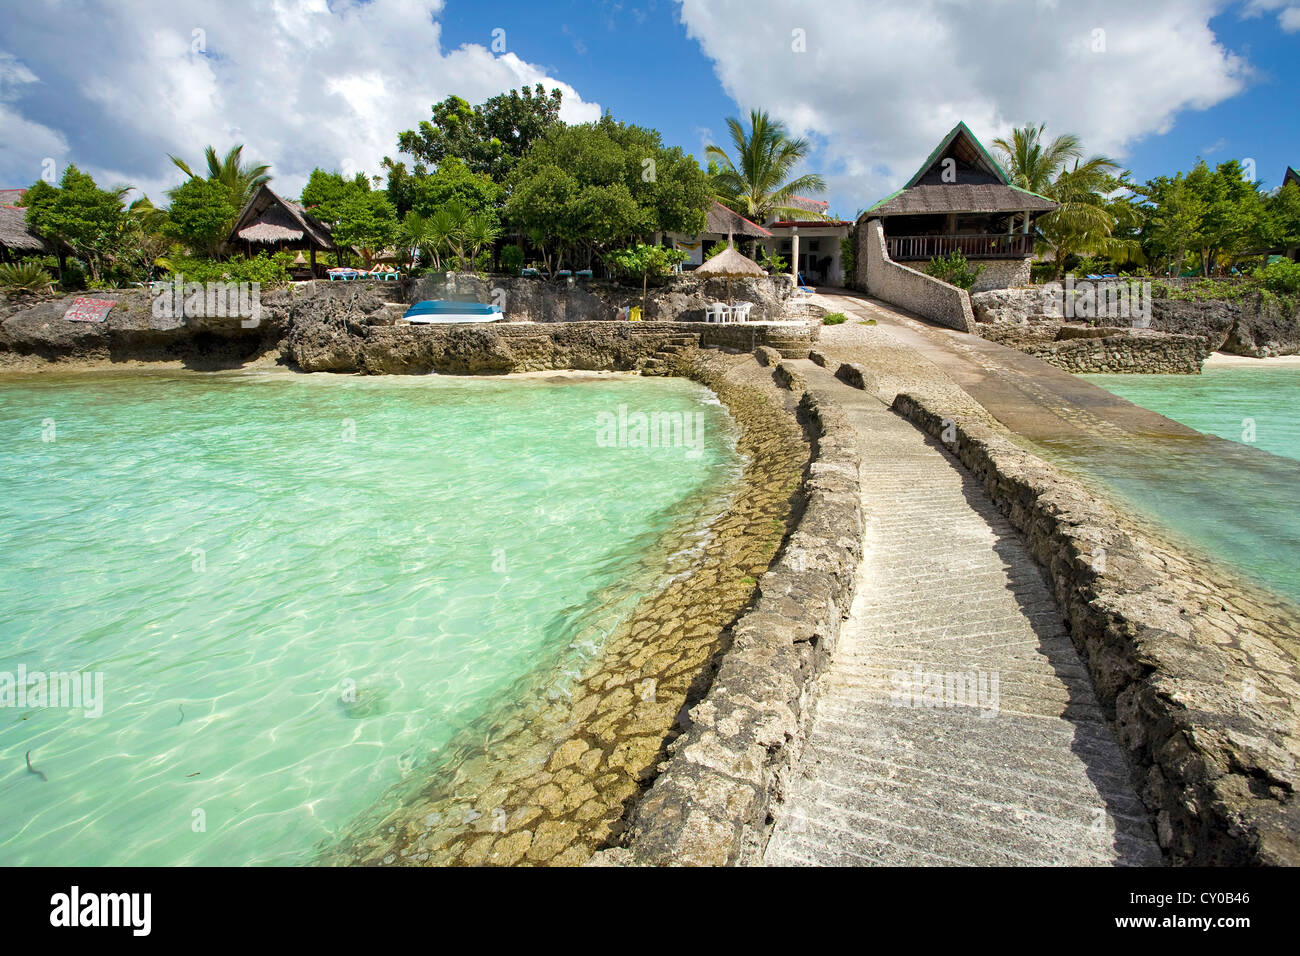 Jetty for boats, small resort, Dolphin House on White Beach, Moalboal, Cebu, Philippines, Indo-Pacific region, Asia - Stock Image